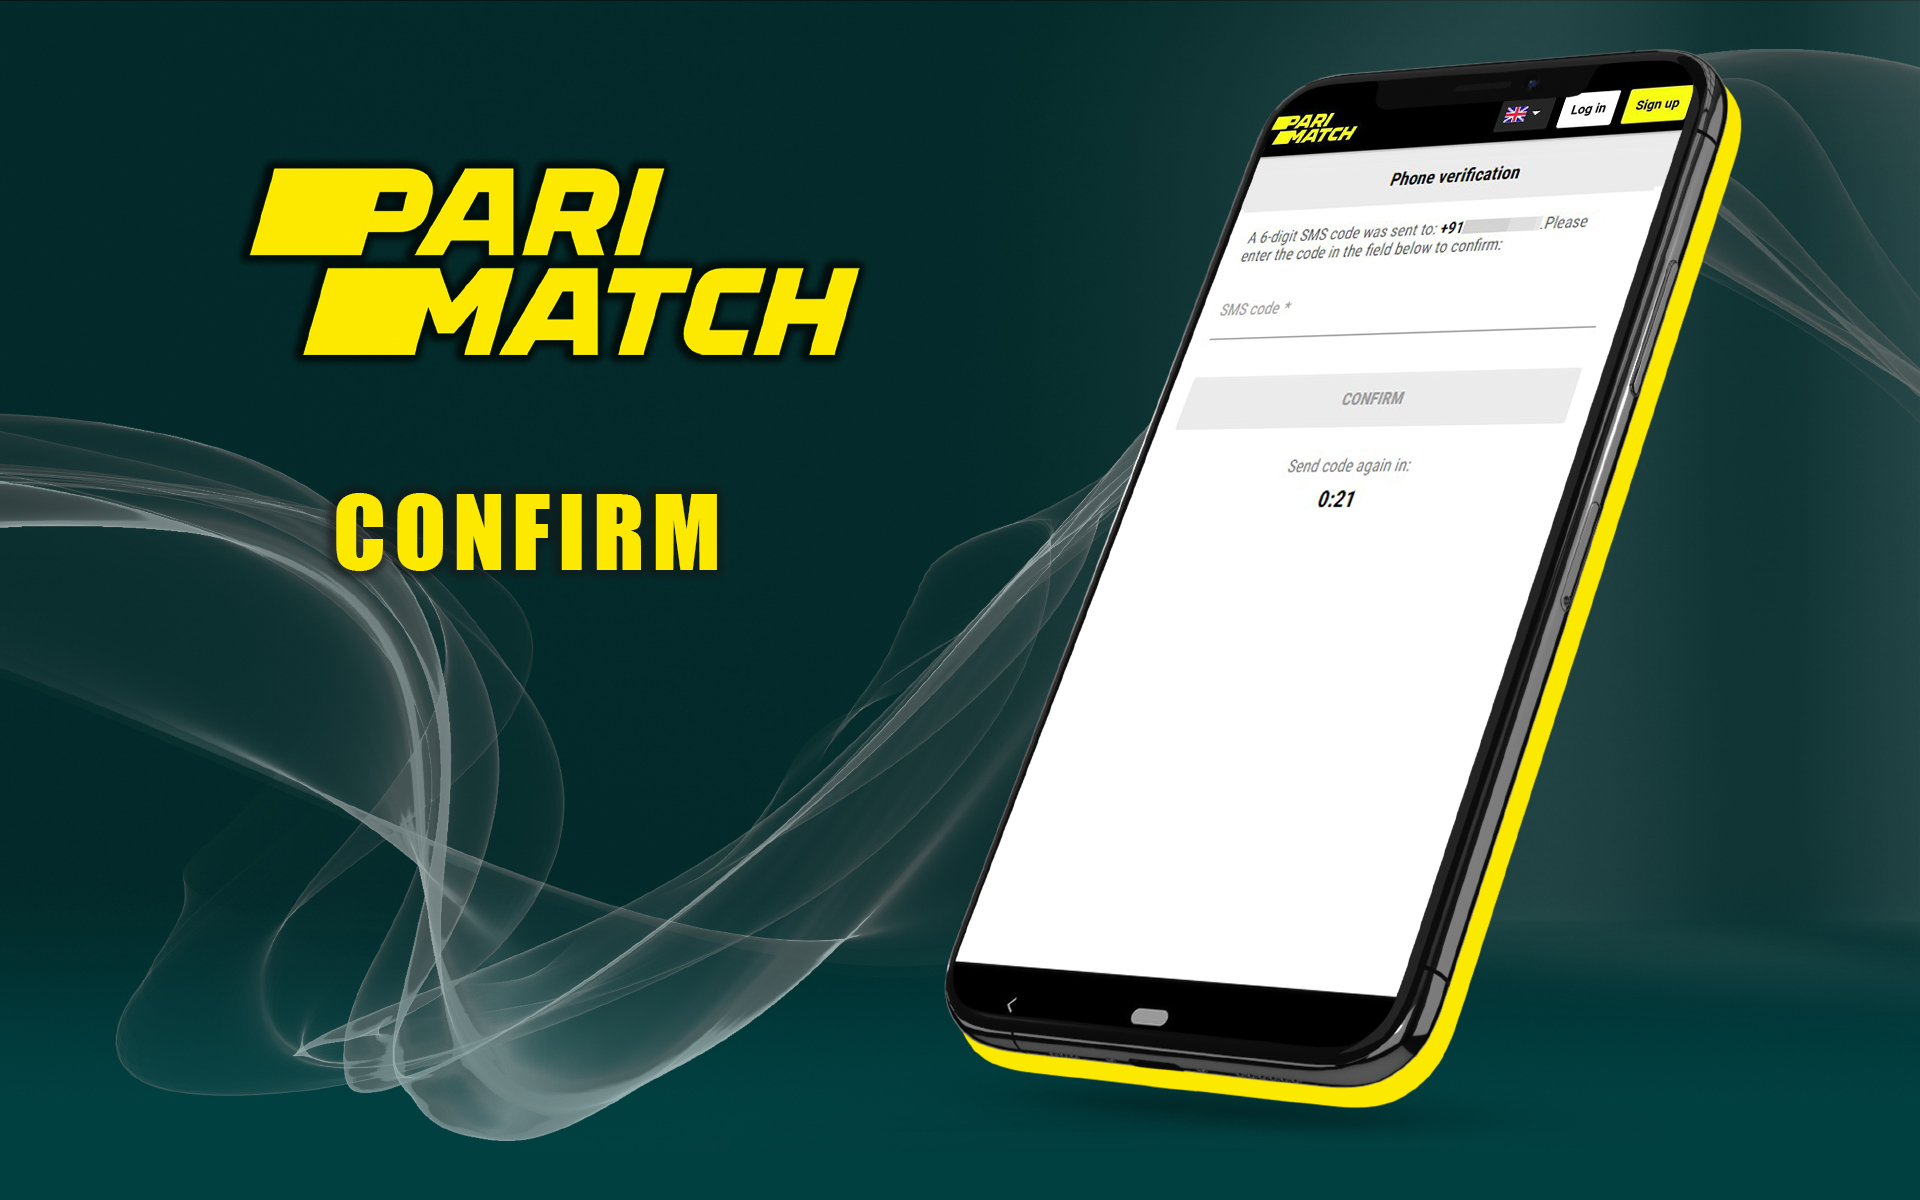 Enter the SMS code and confirm the registration.